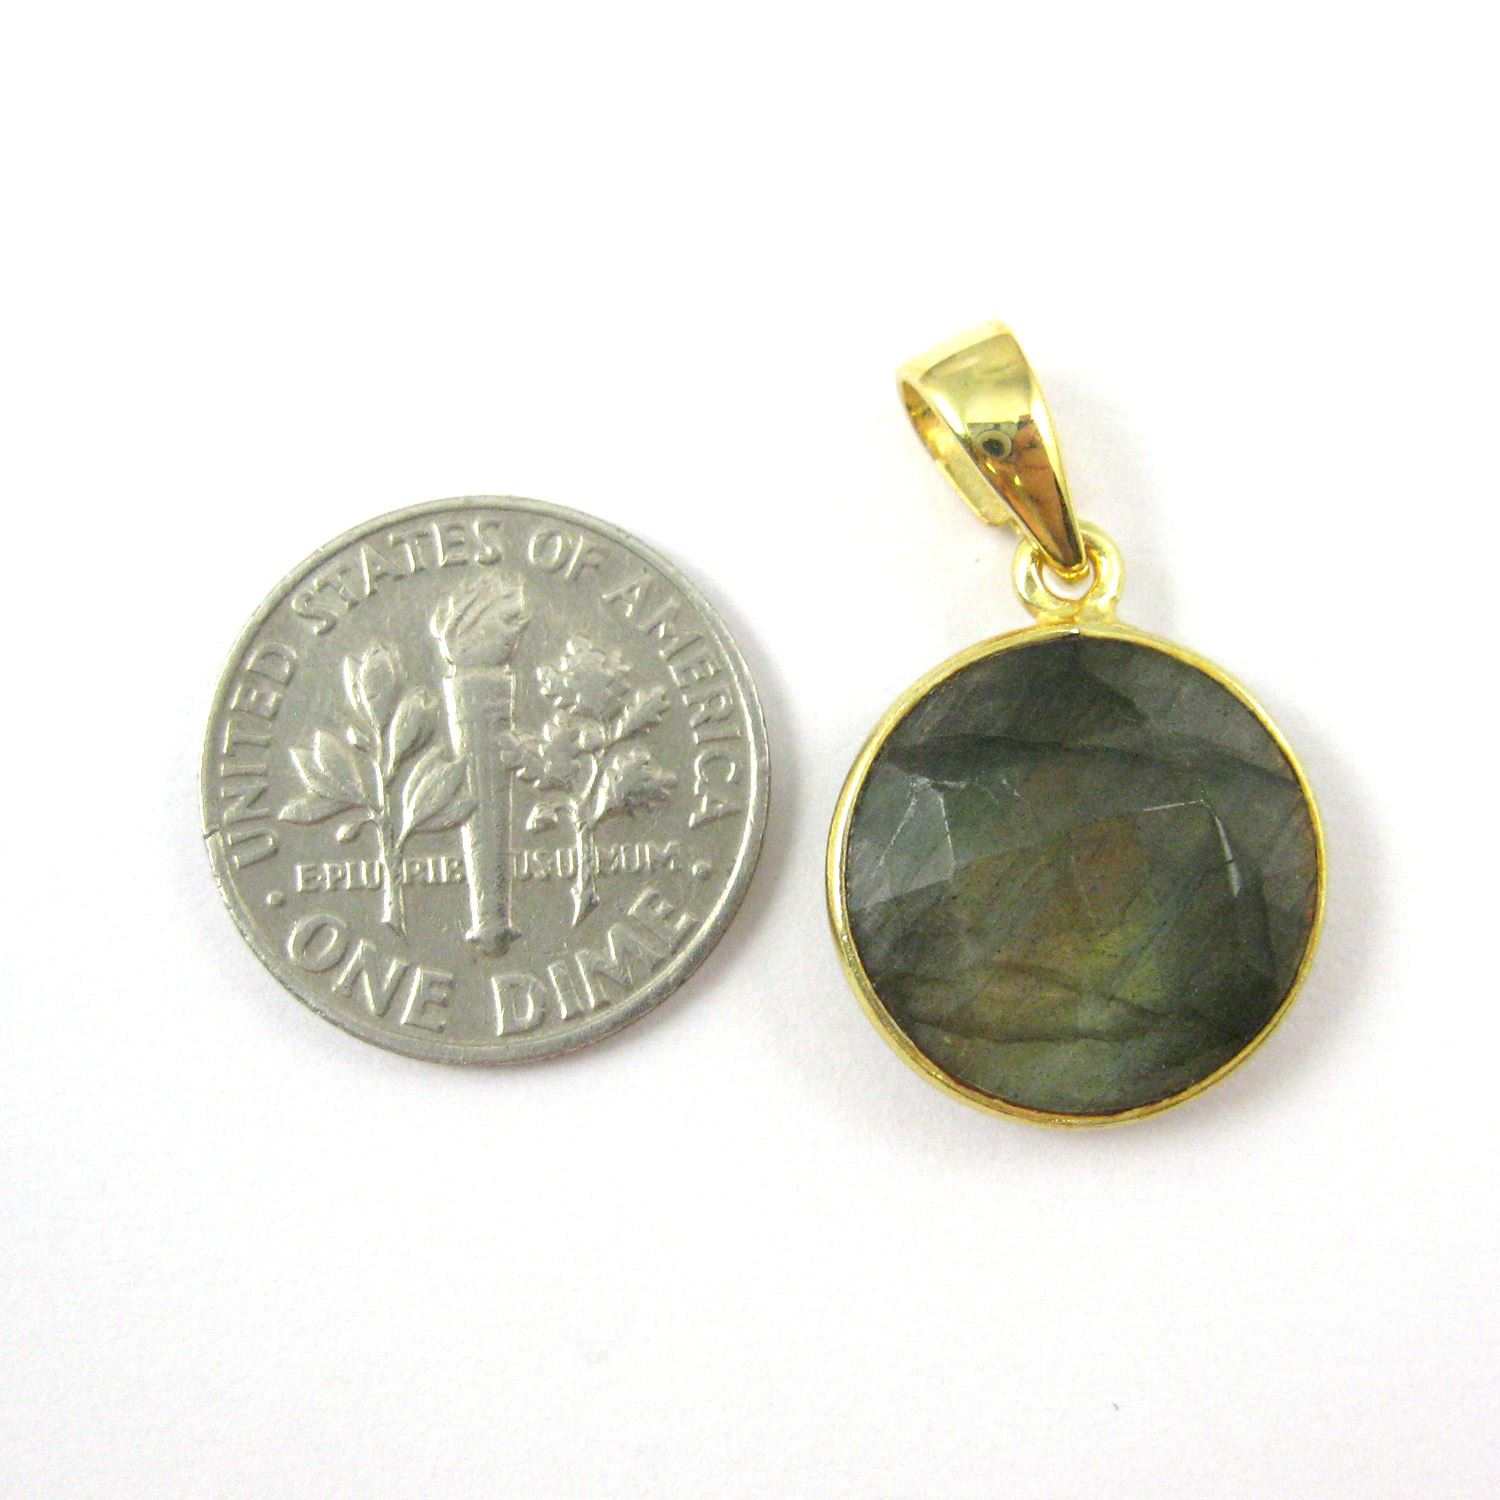 Bezel Gemstone Pendant with Bail - Gold plated Sterling Silver Round Gem Pendant - Ready for Necklace - 24mm- Labradorite